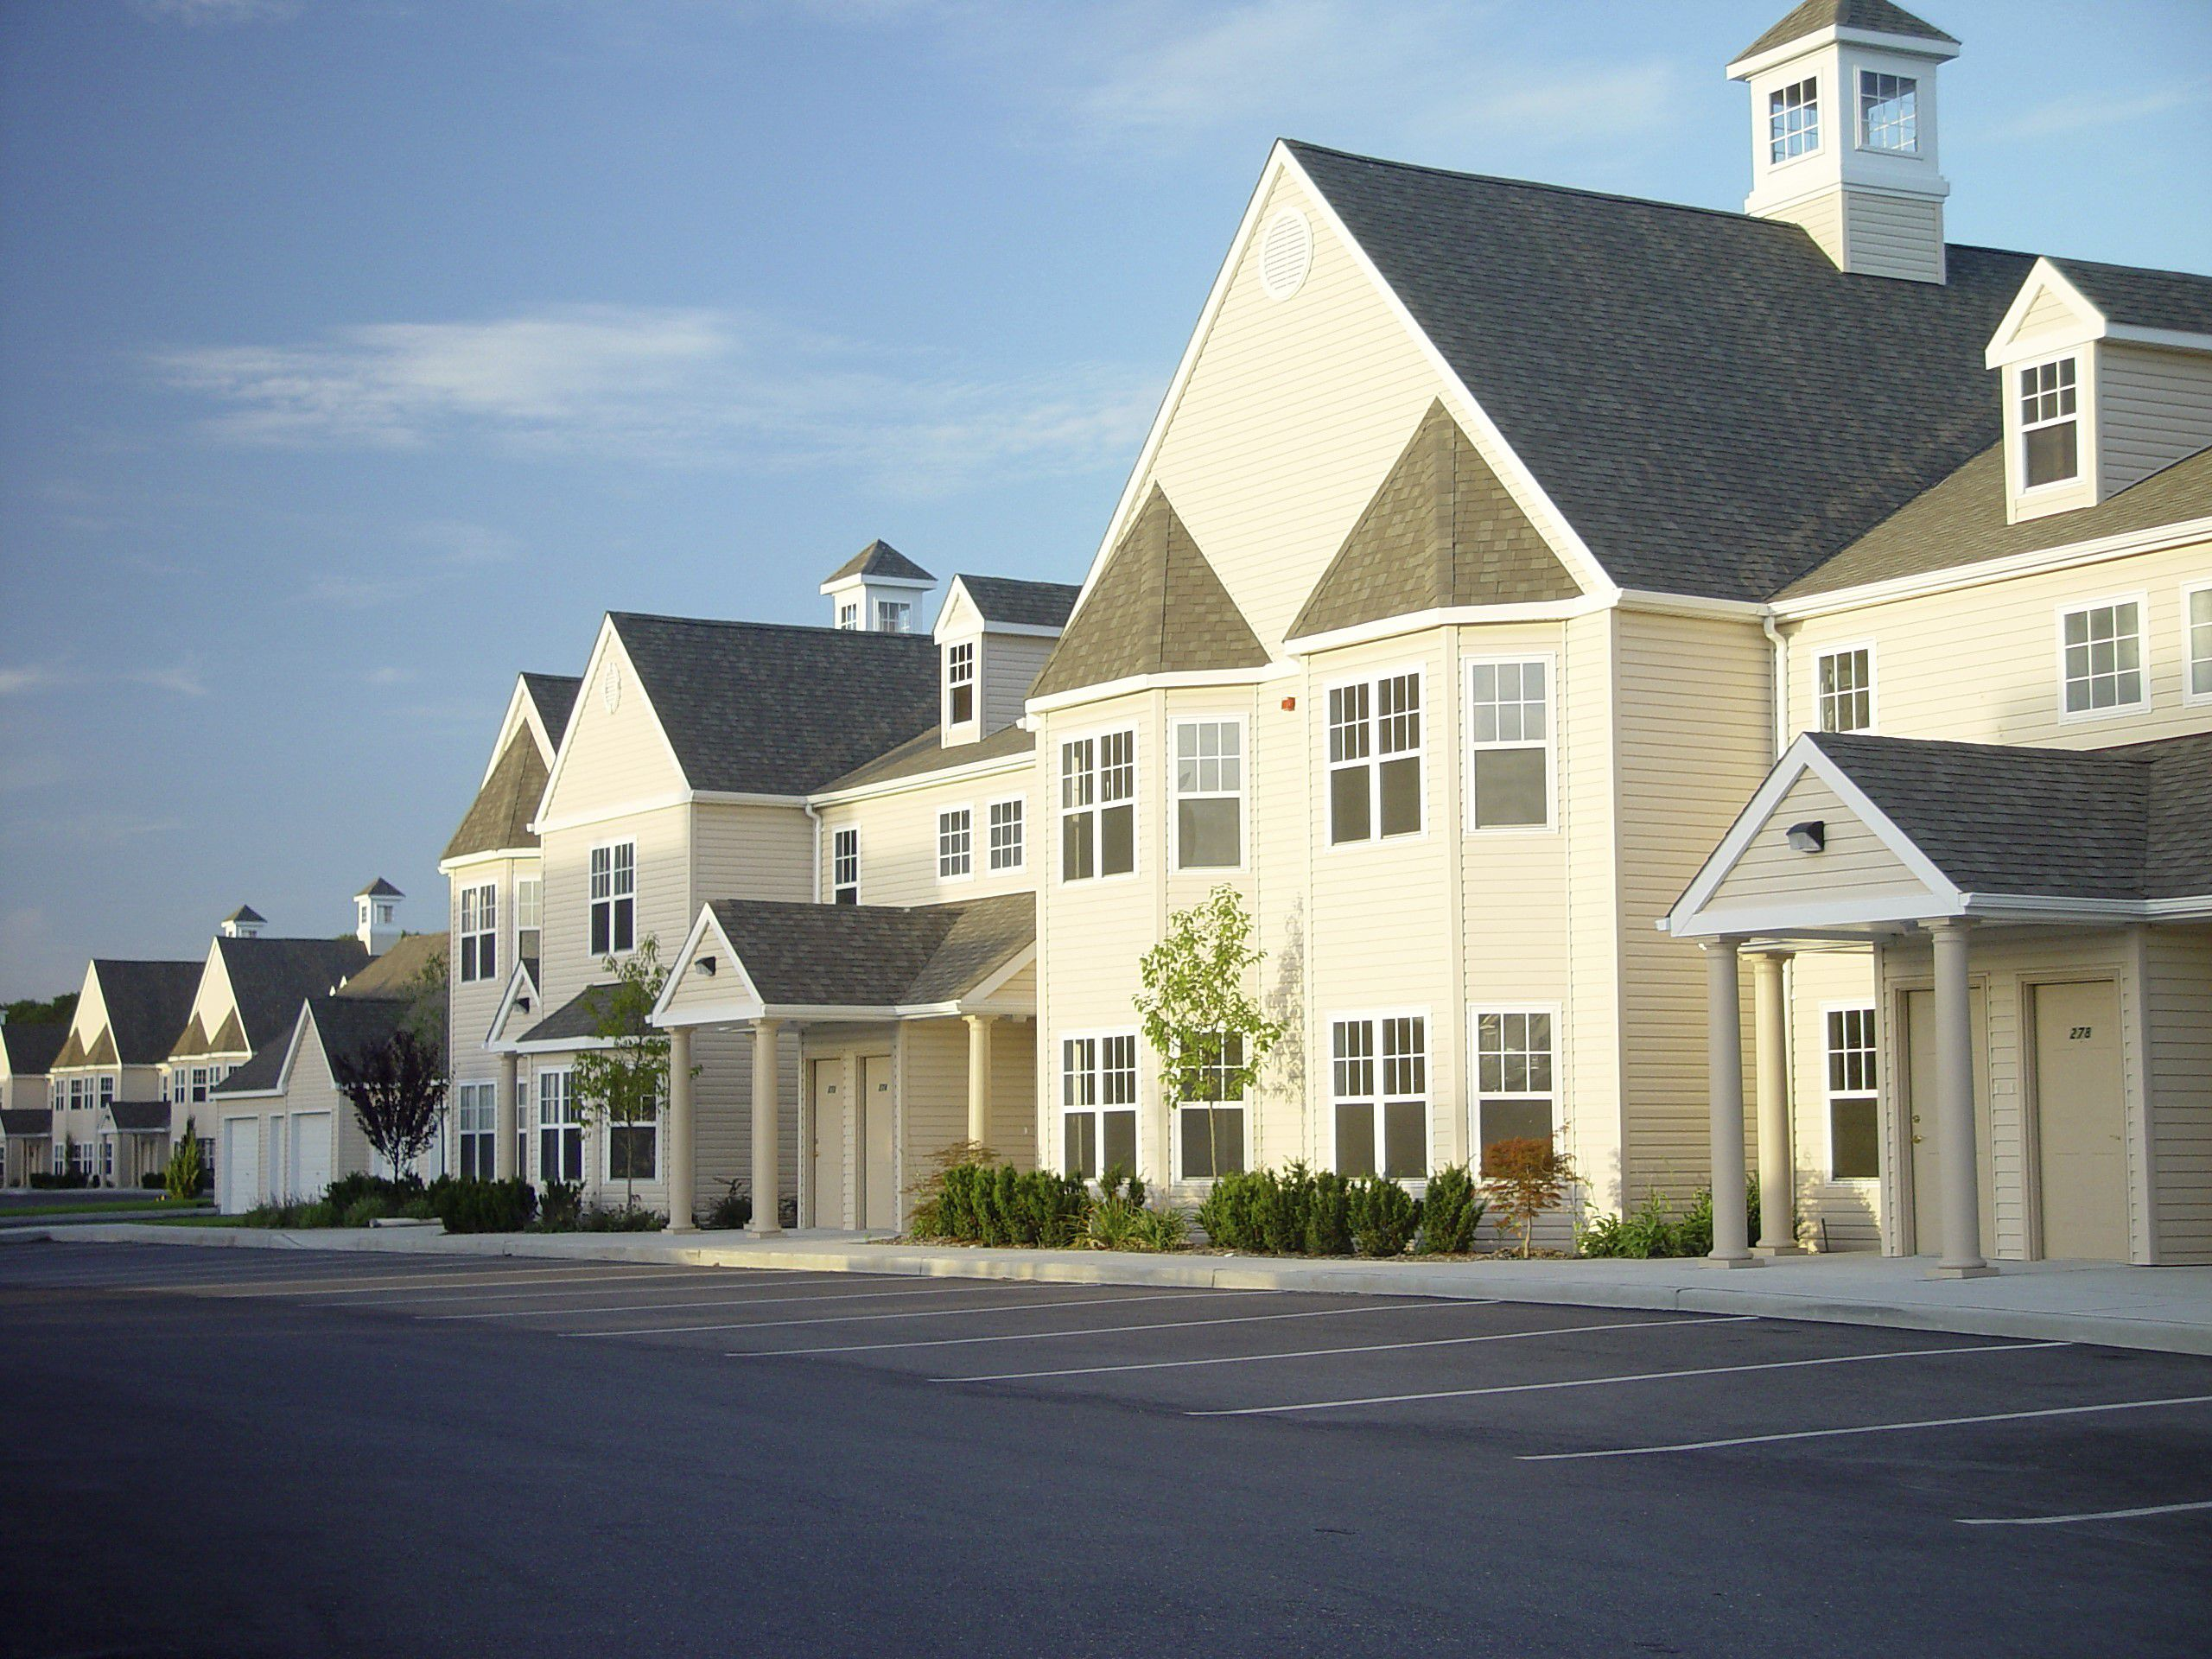 Commercial Property Types : Commercial real estate property types